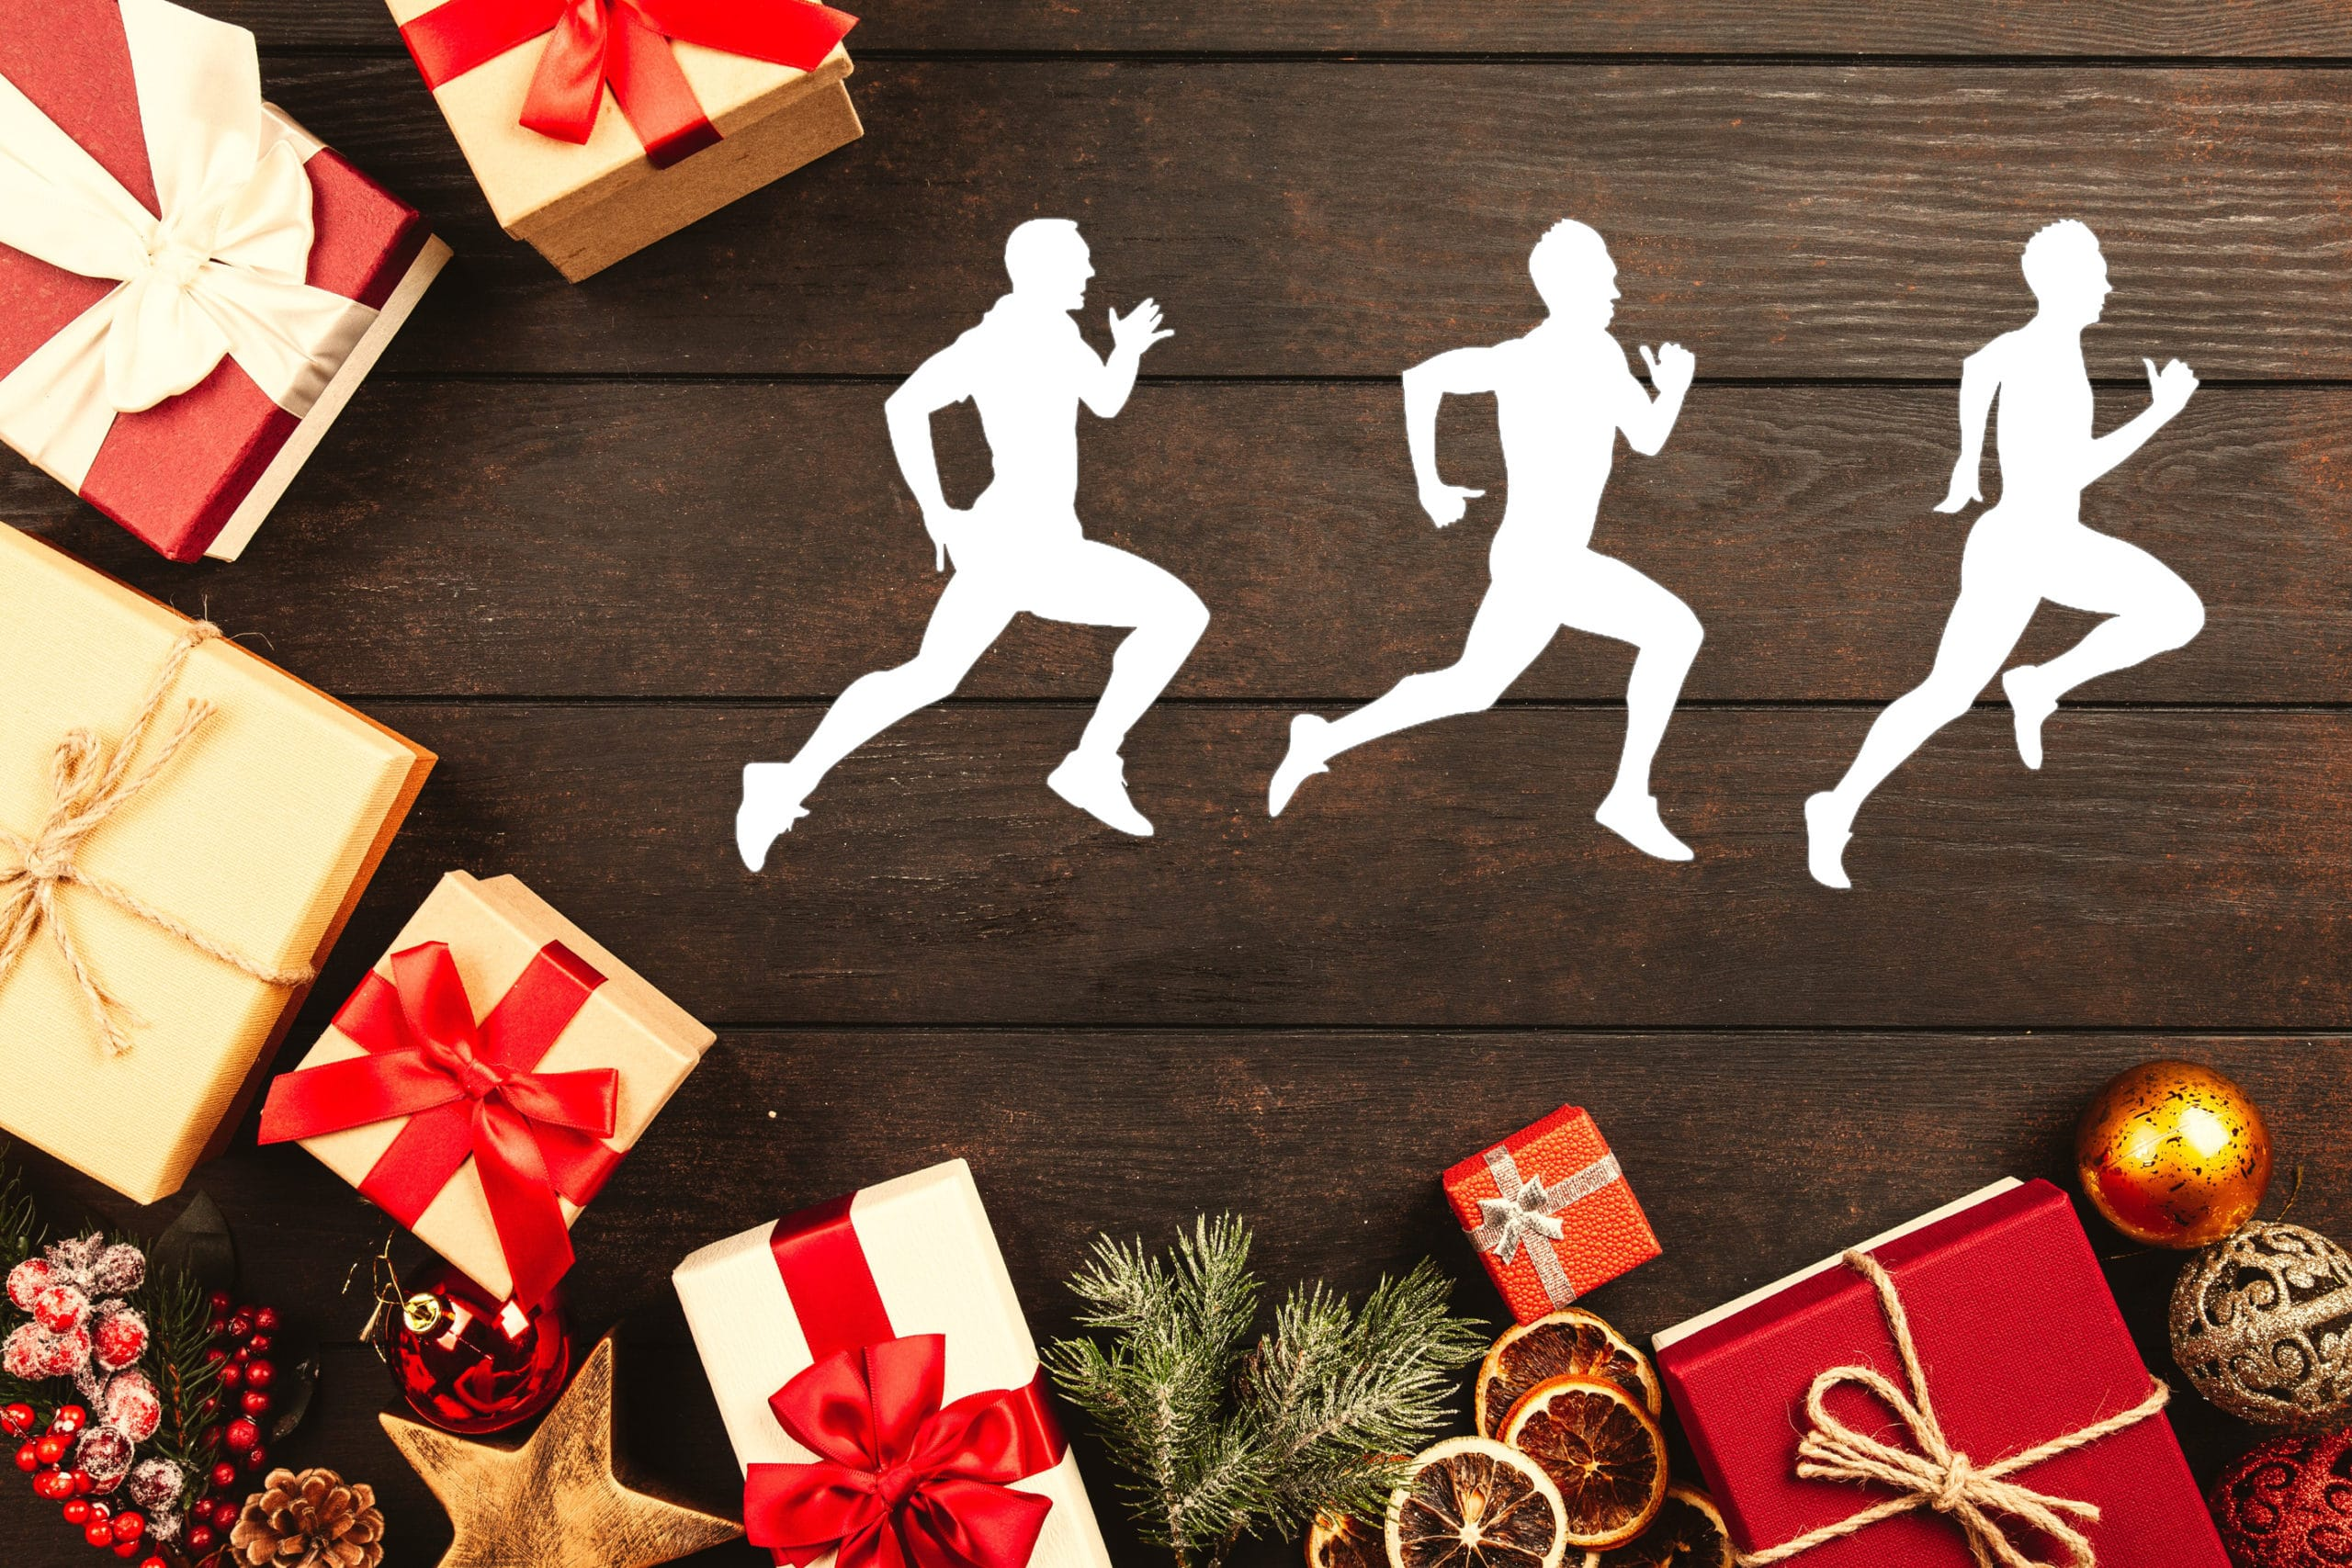 Christmas Gift Ideas For Runners 2020 Great Gift Ideas for Runners as Recommended by a Runner